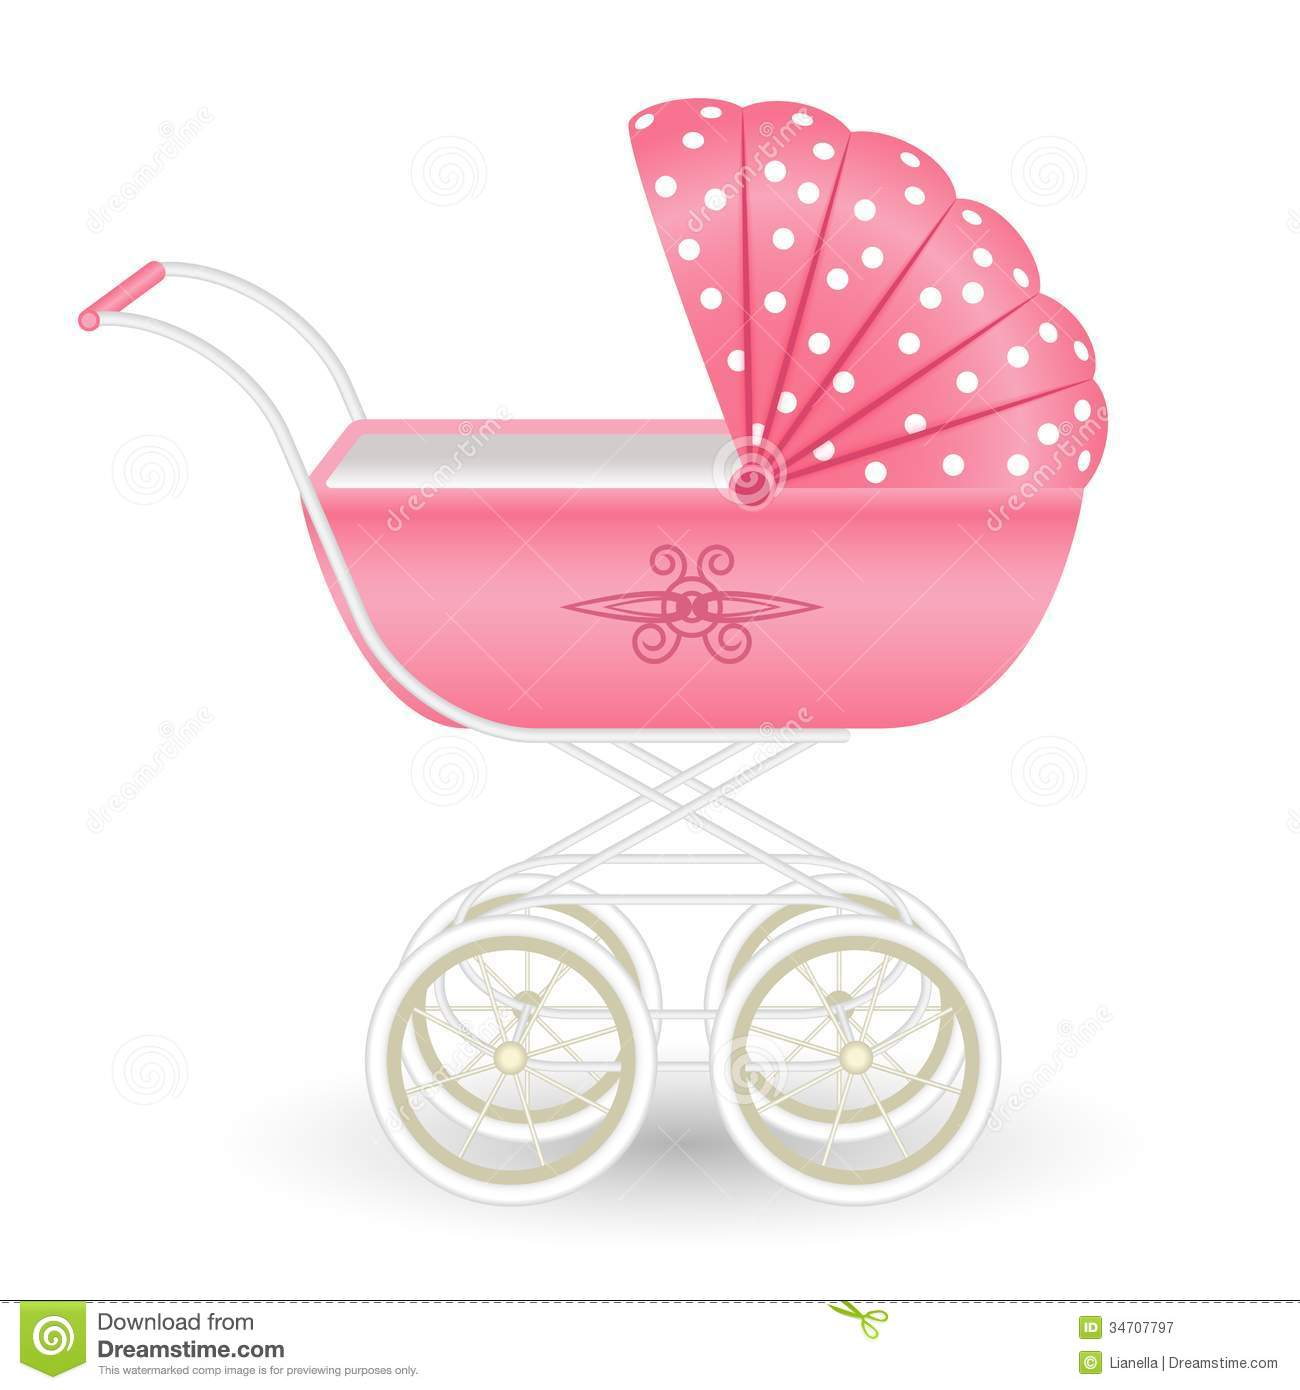 Sweet pink pram stock illustration Illustration of girl